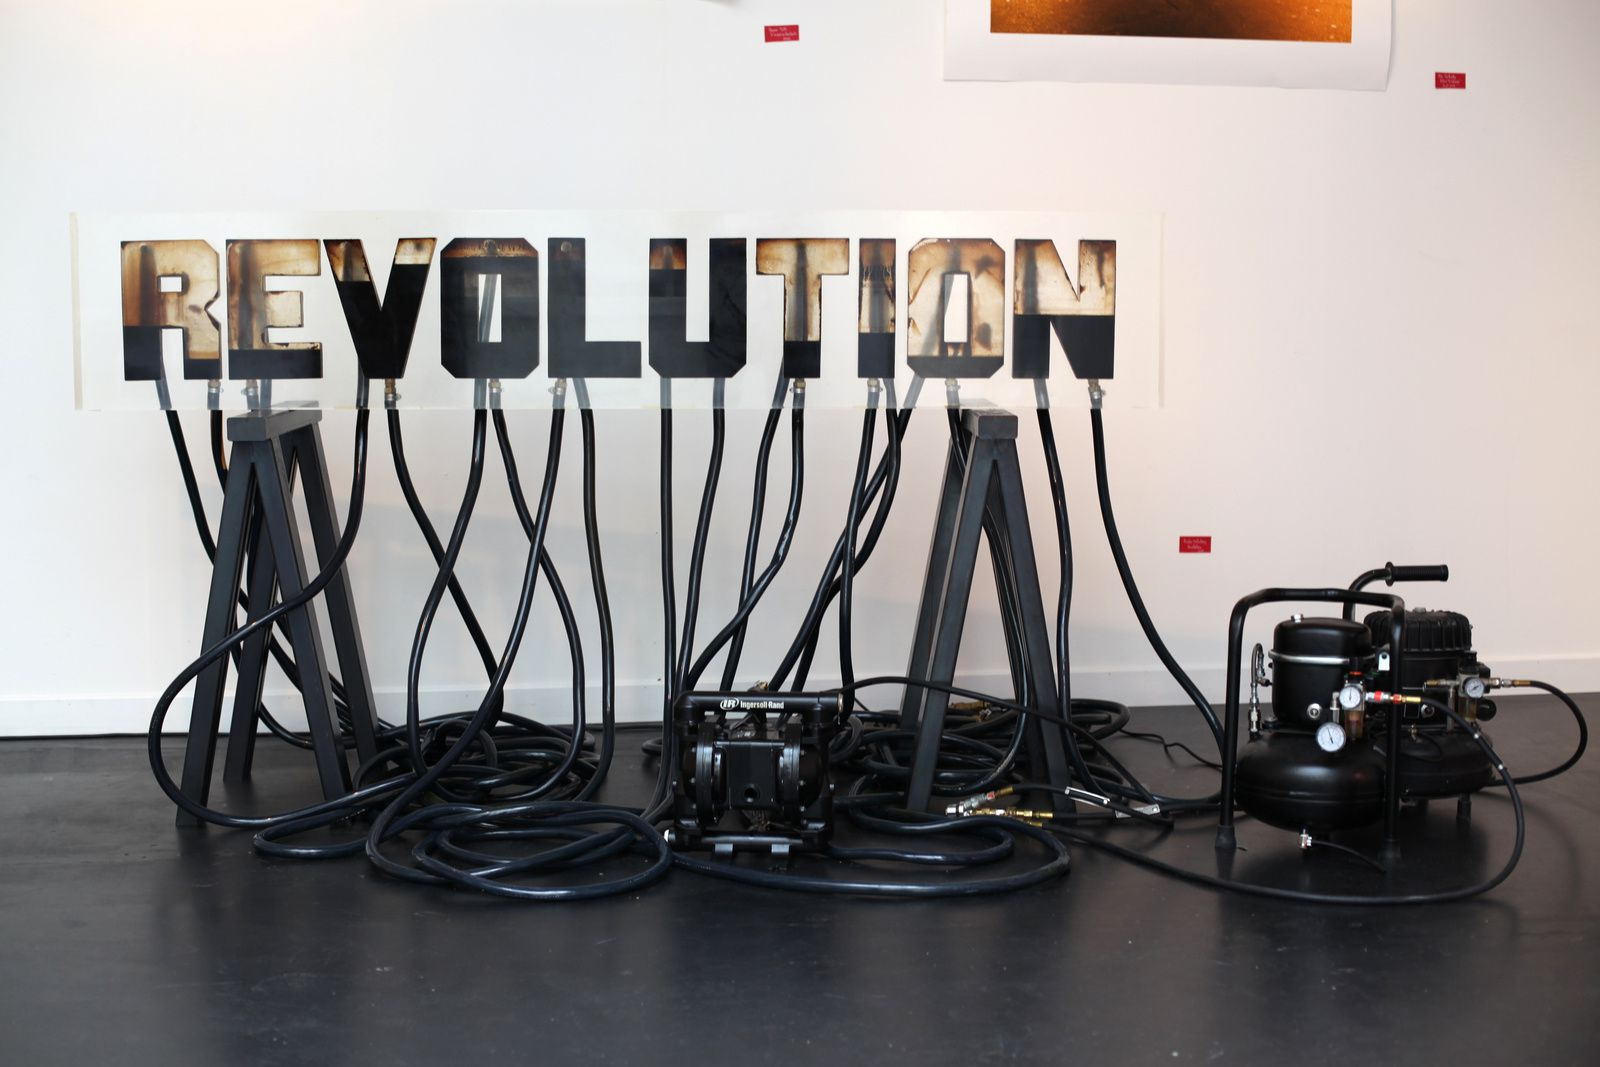 """Révolution"", 2011 d'Andreï MOLODKIN - Courtesy de l'artiste © Photo Éric Simon"